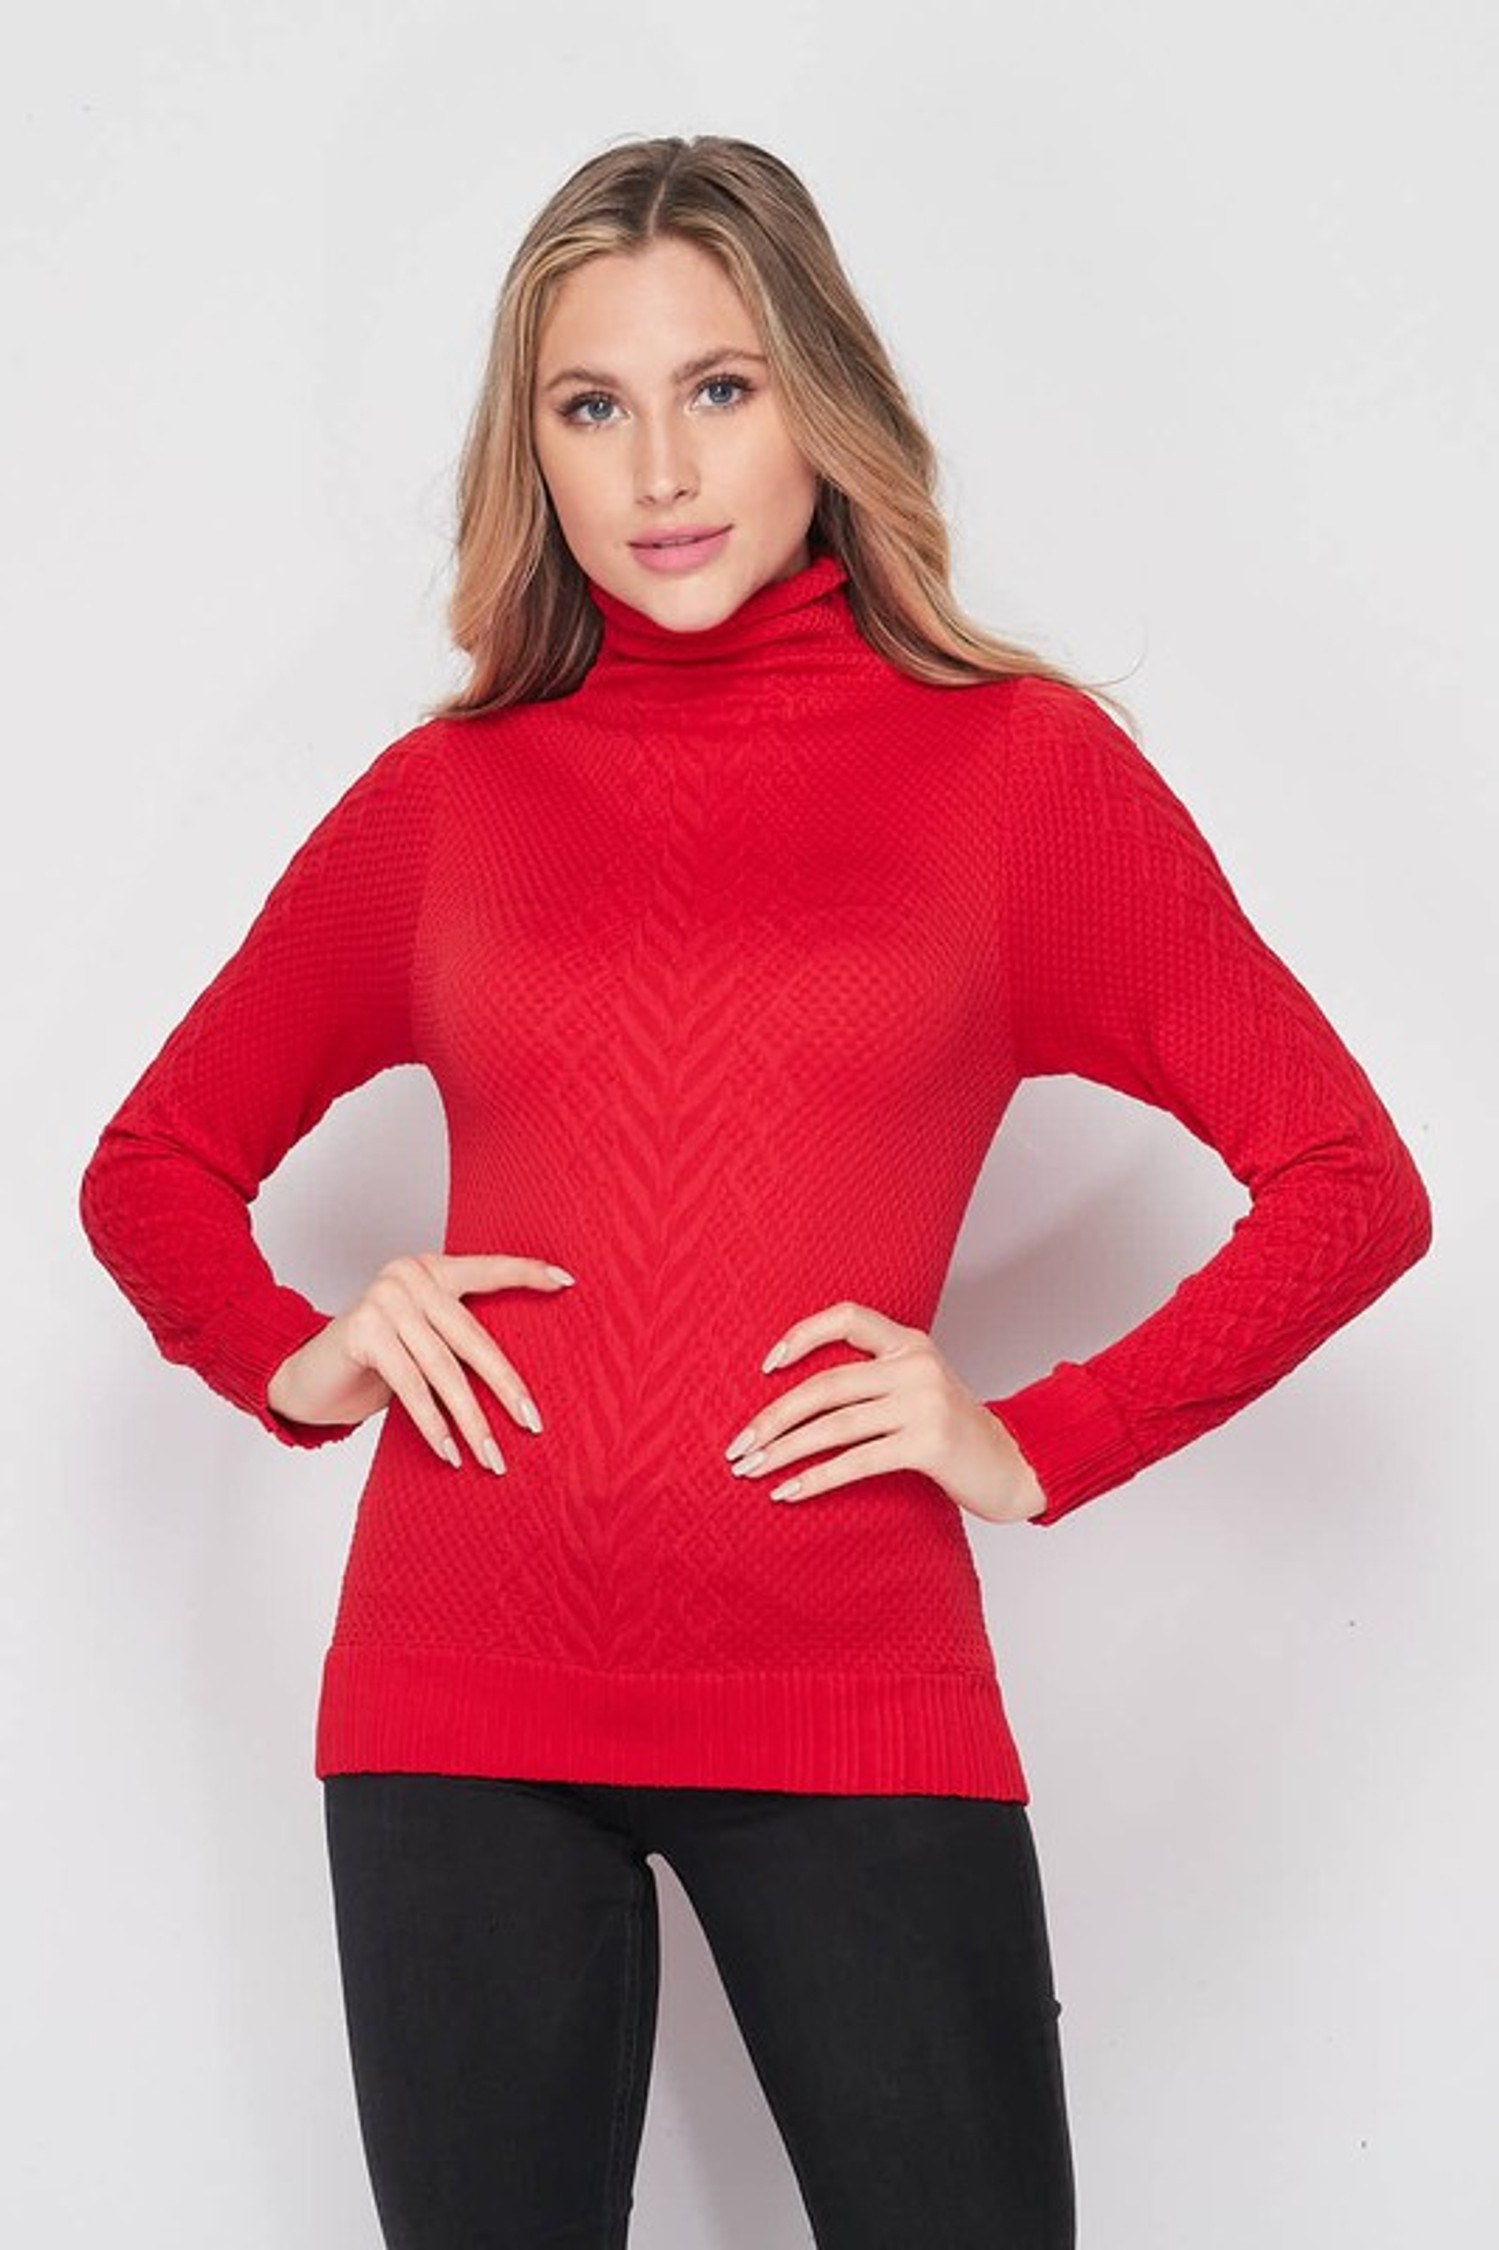 Front of Red Seamless Fitted Mock Neck Cable Knit Top